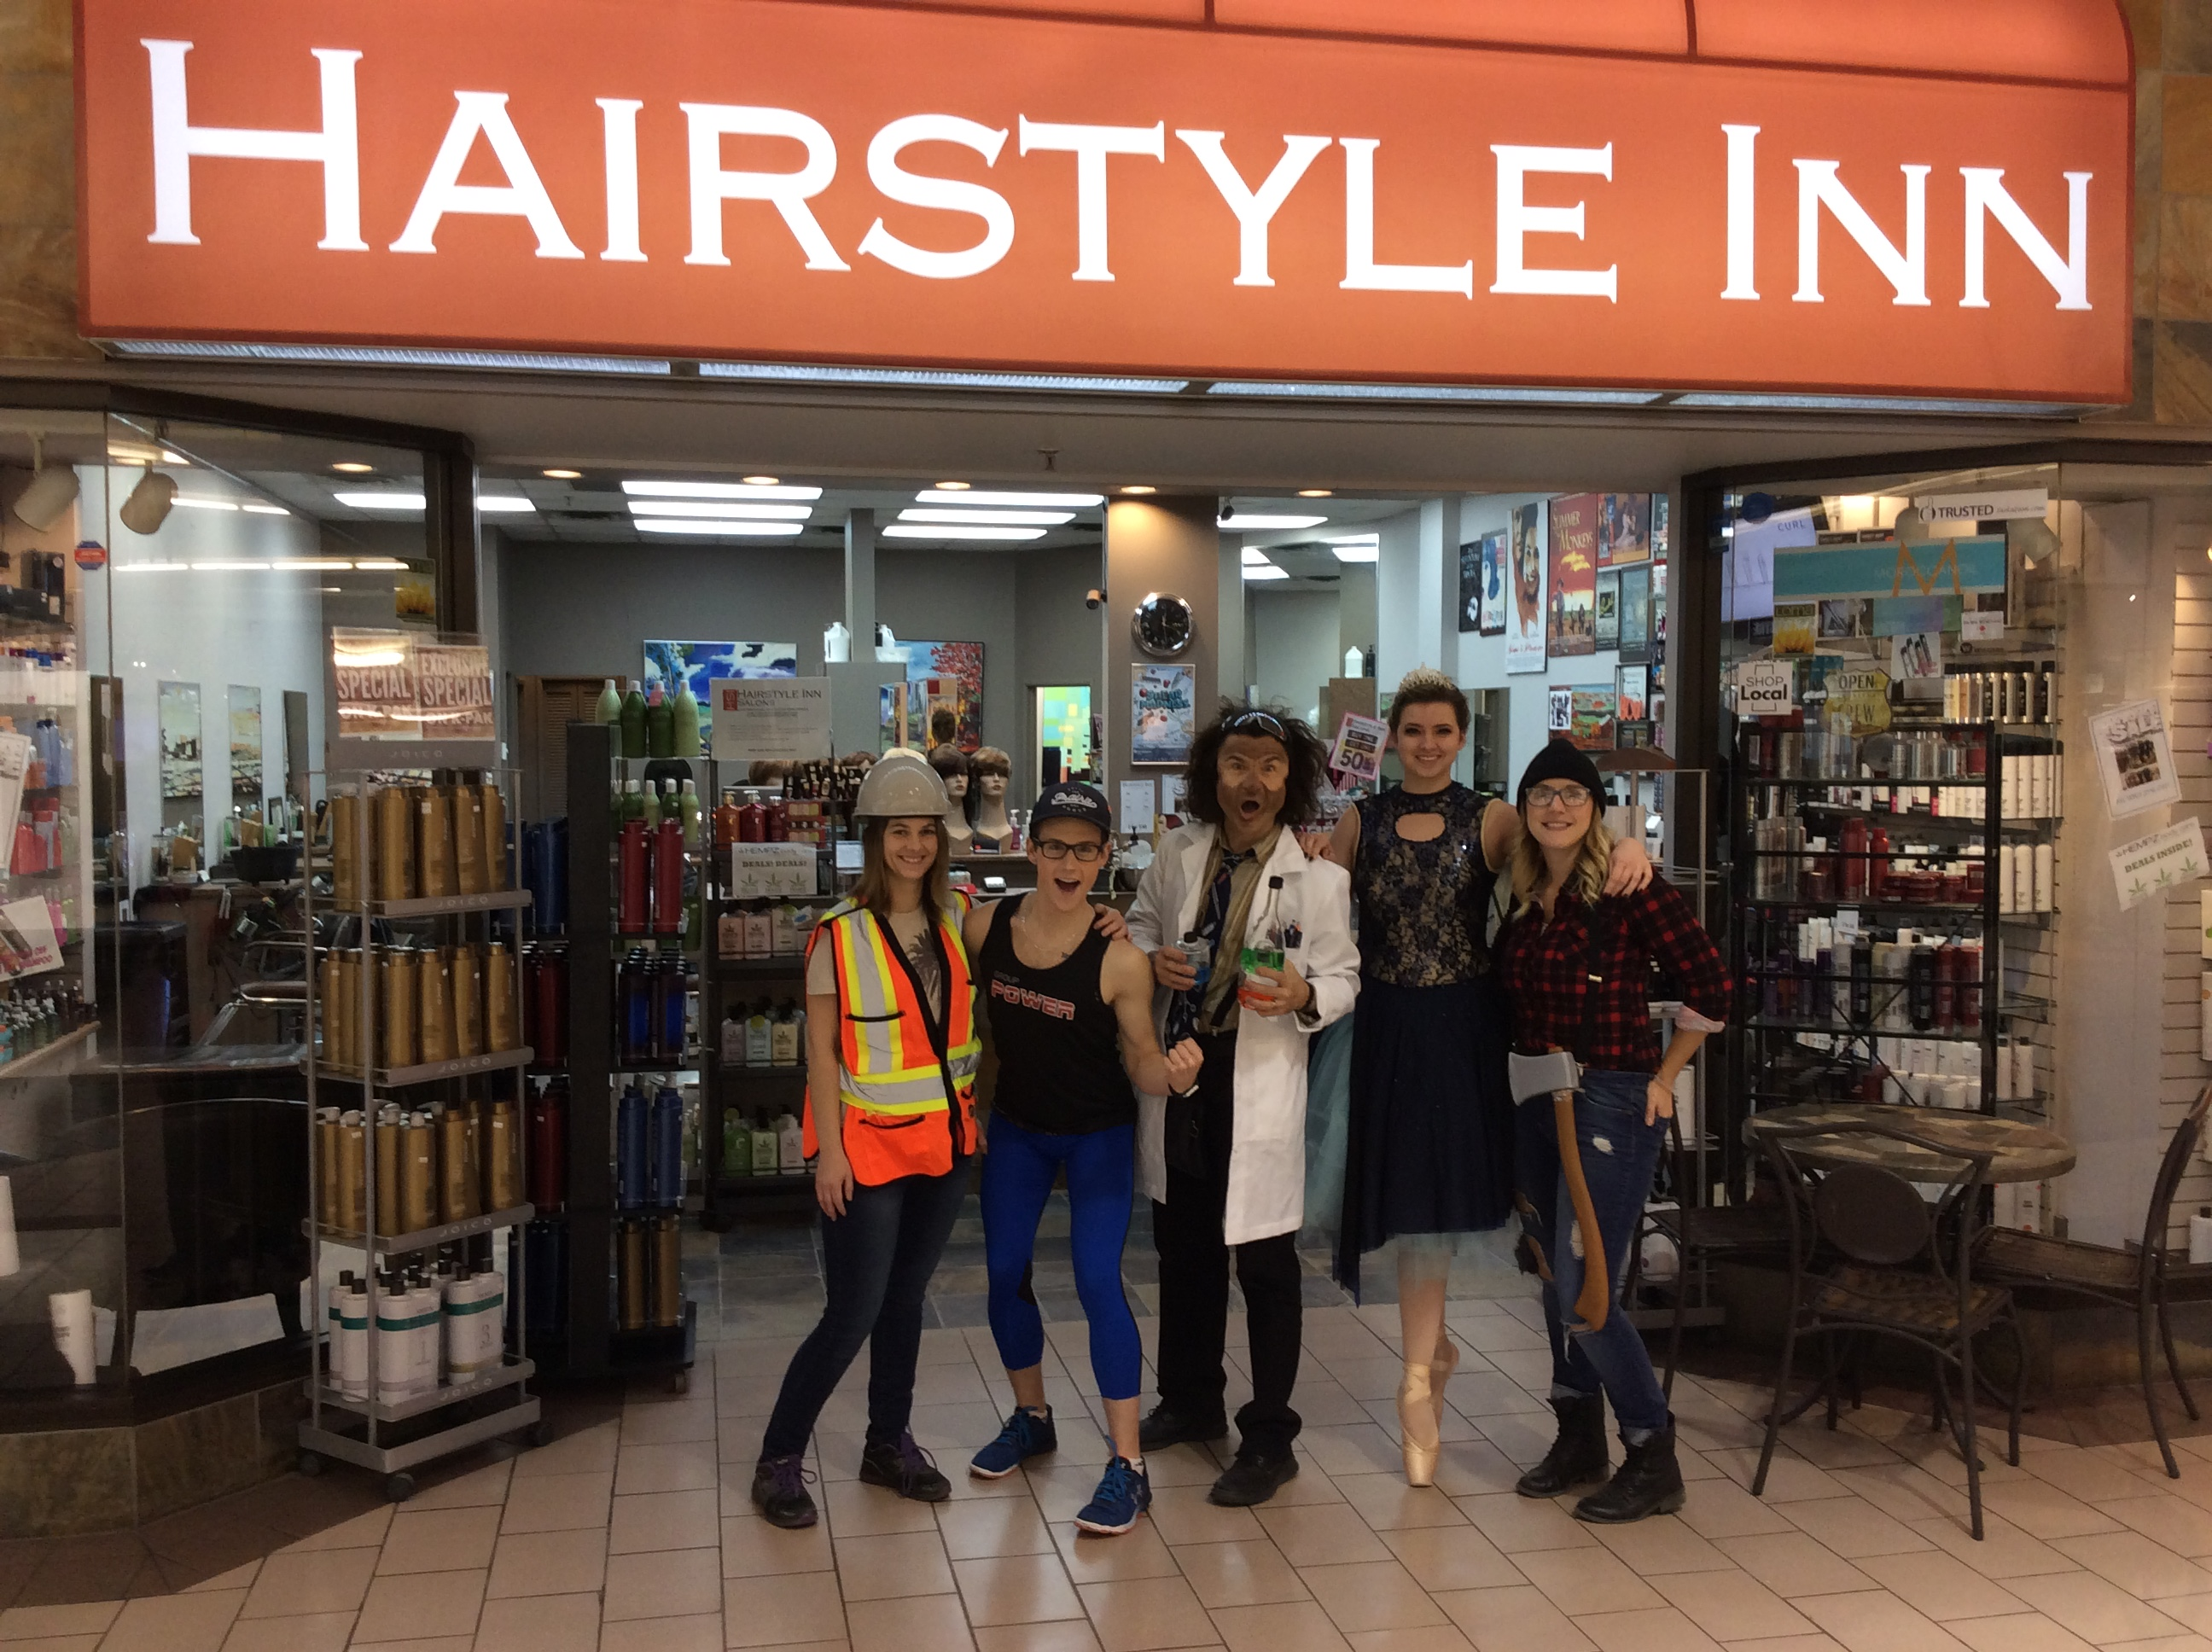 Hairstyle inn team dressed in Halloween costumes at the salon's entrance